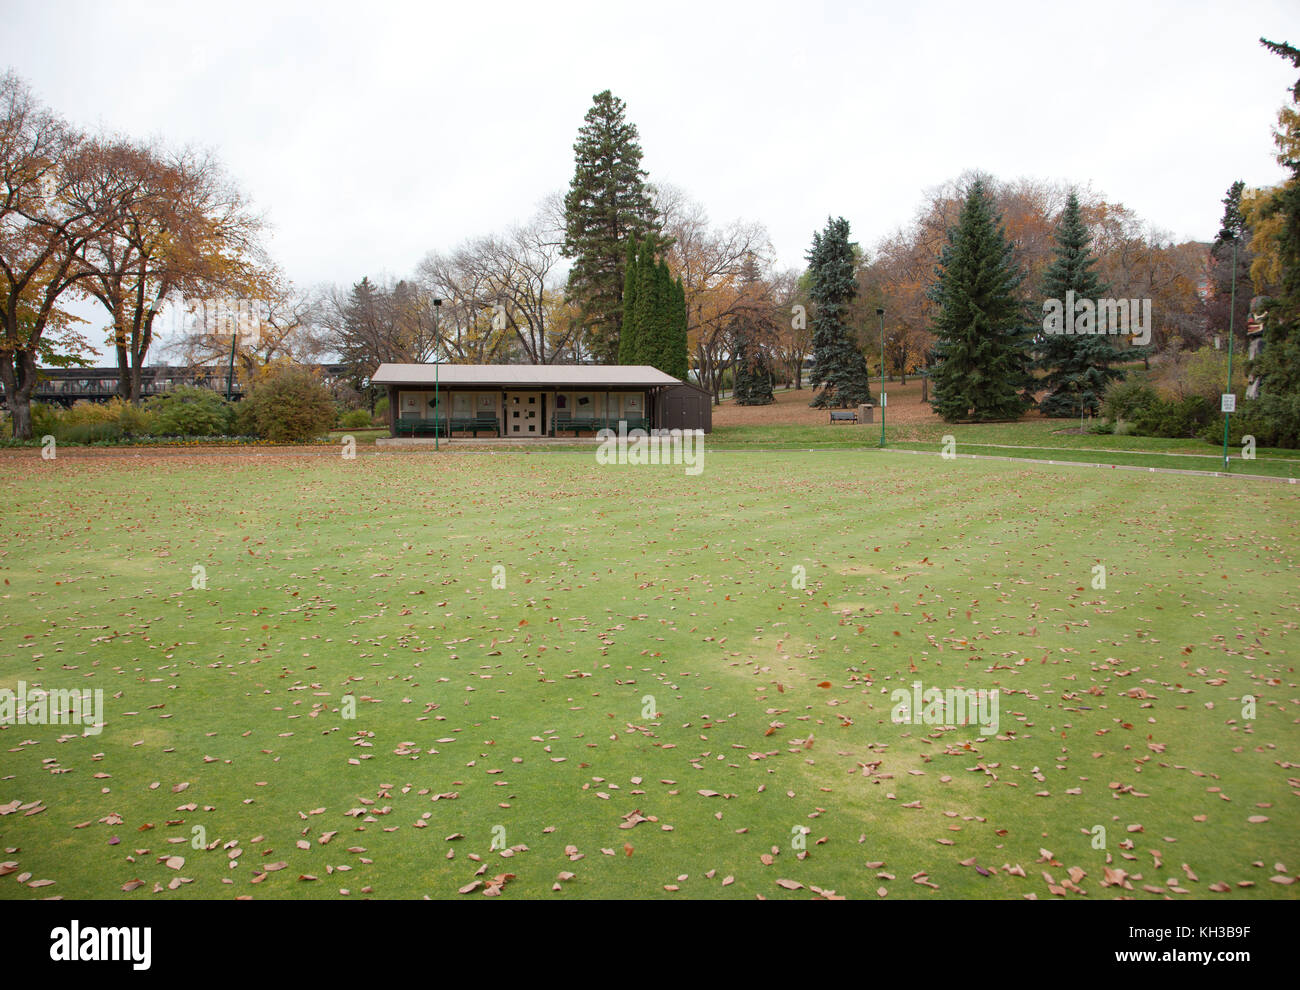 a green lawn bowling area in the park - Stock Image